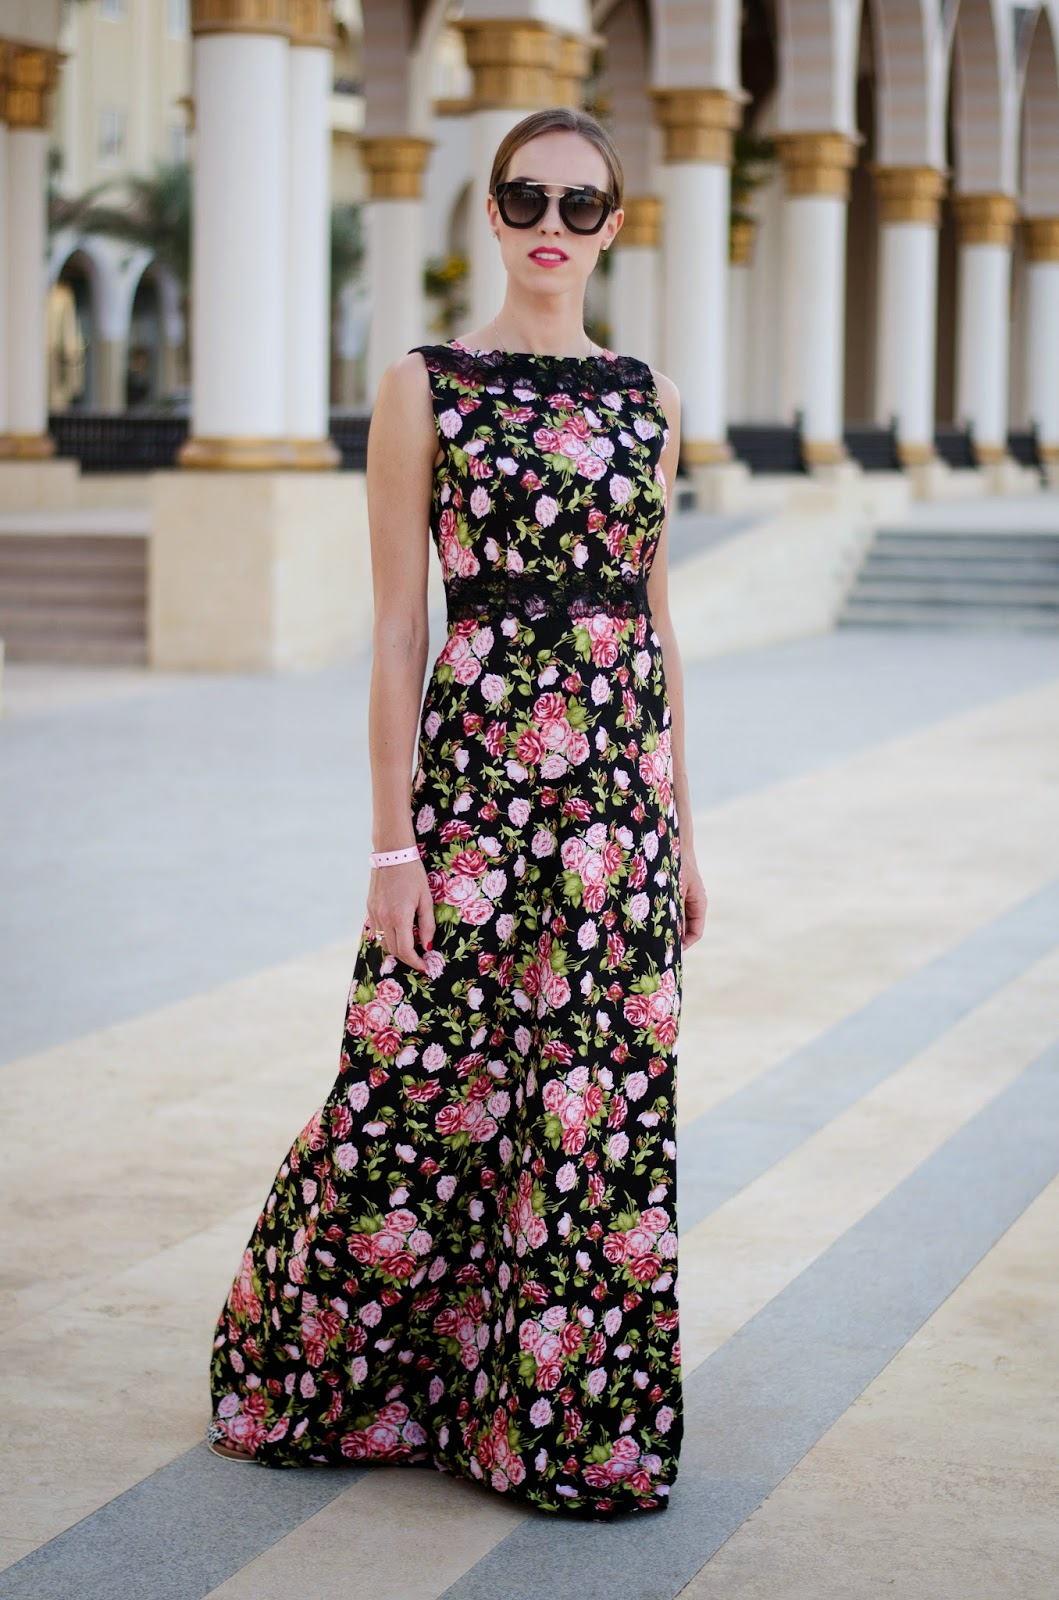 kristjaana mere black floral maxi dress